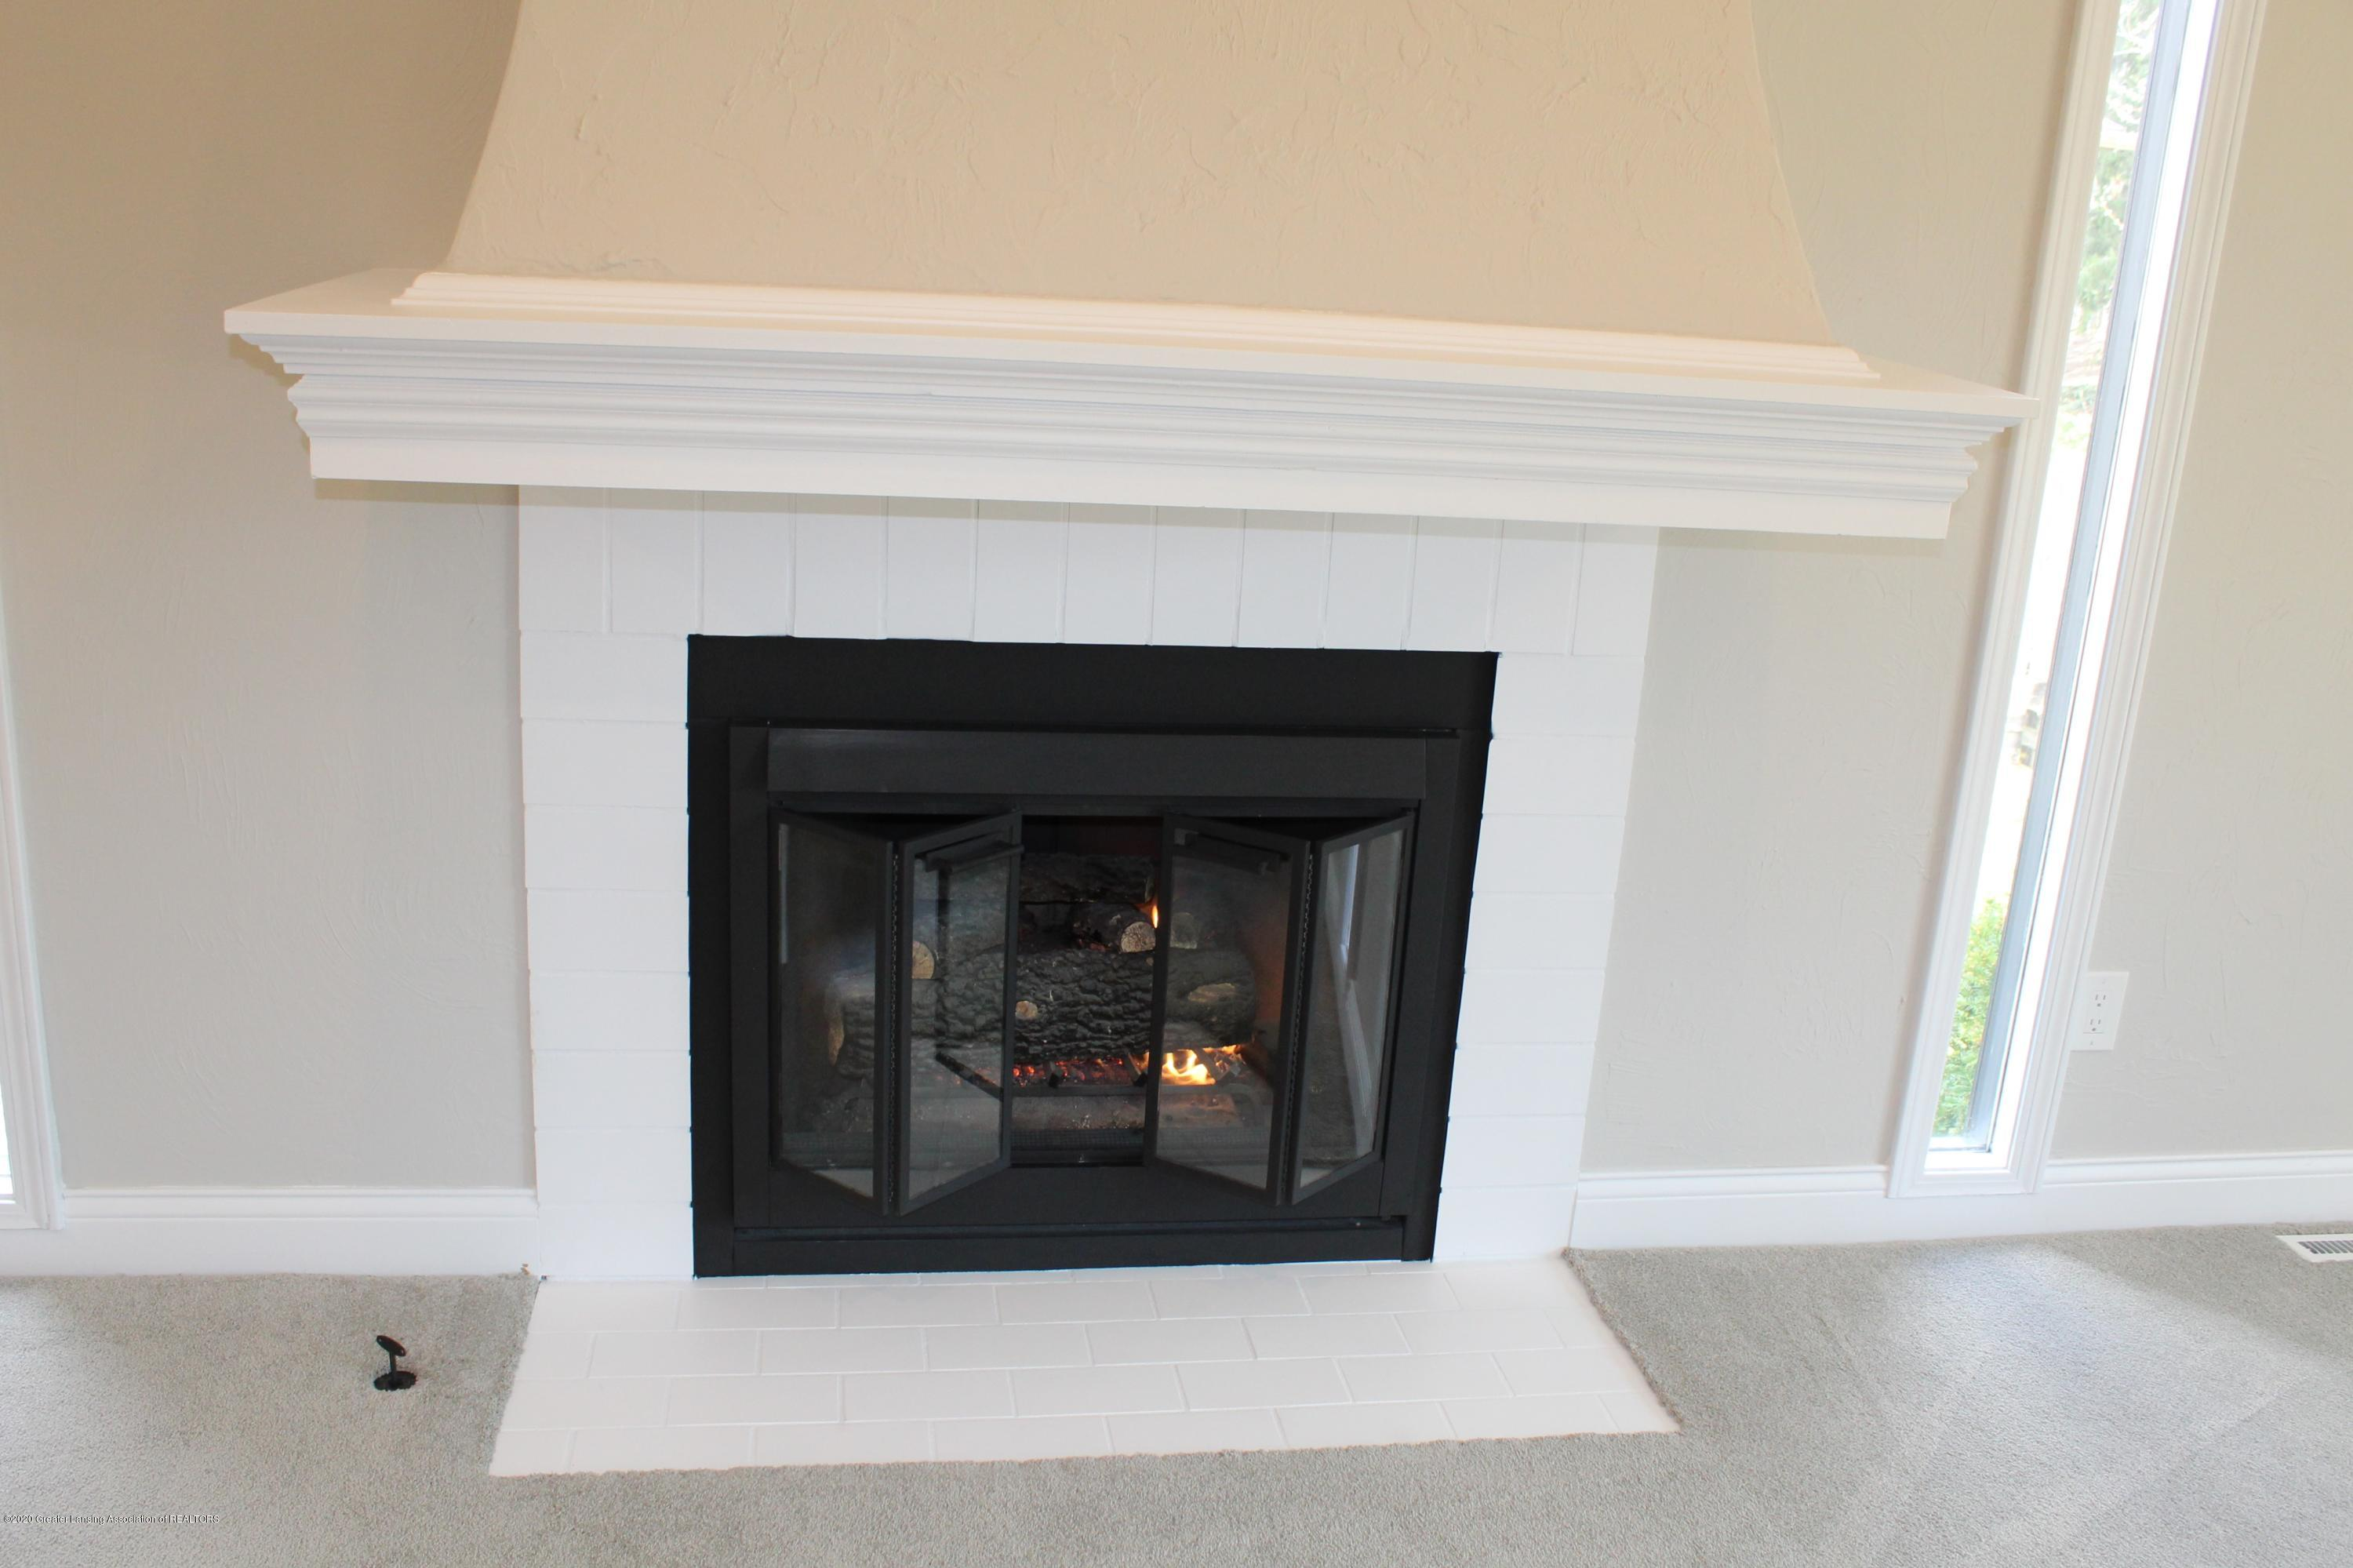 984 Whittier Dr - GAS FIREPLACE - 26